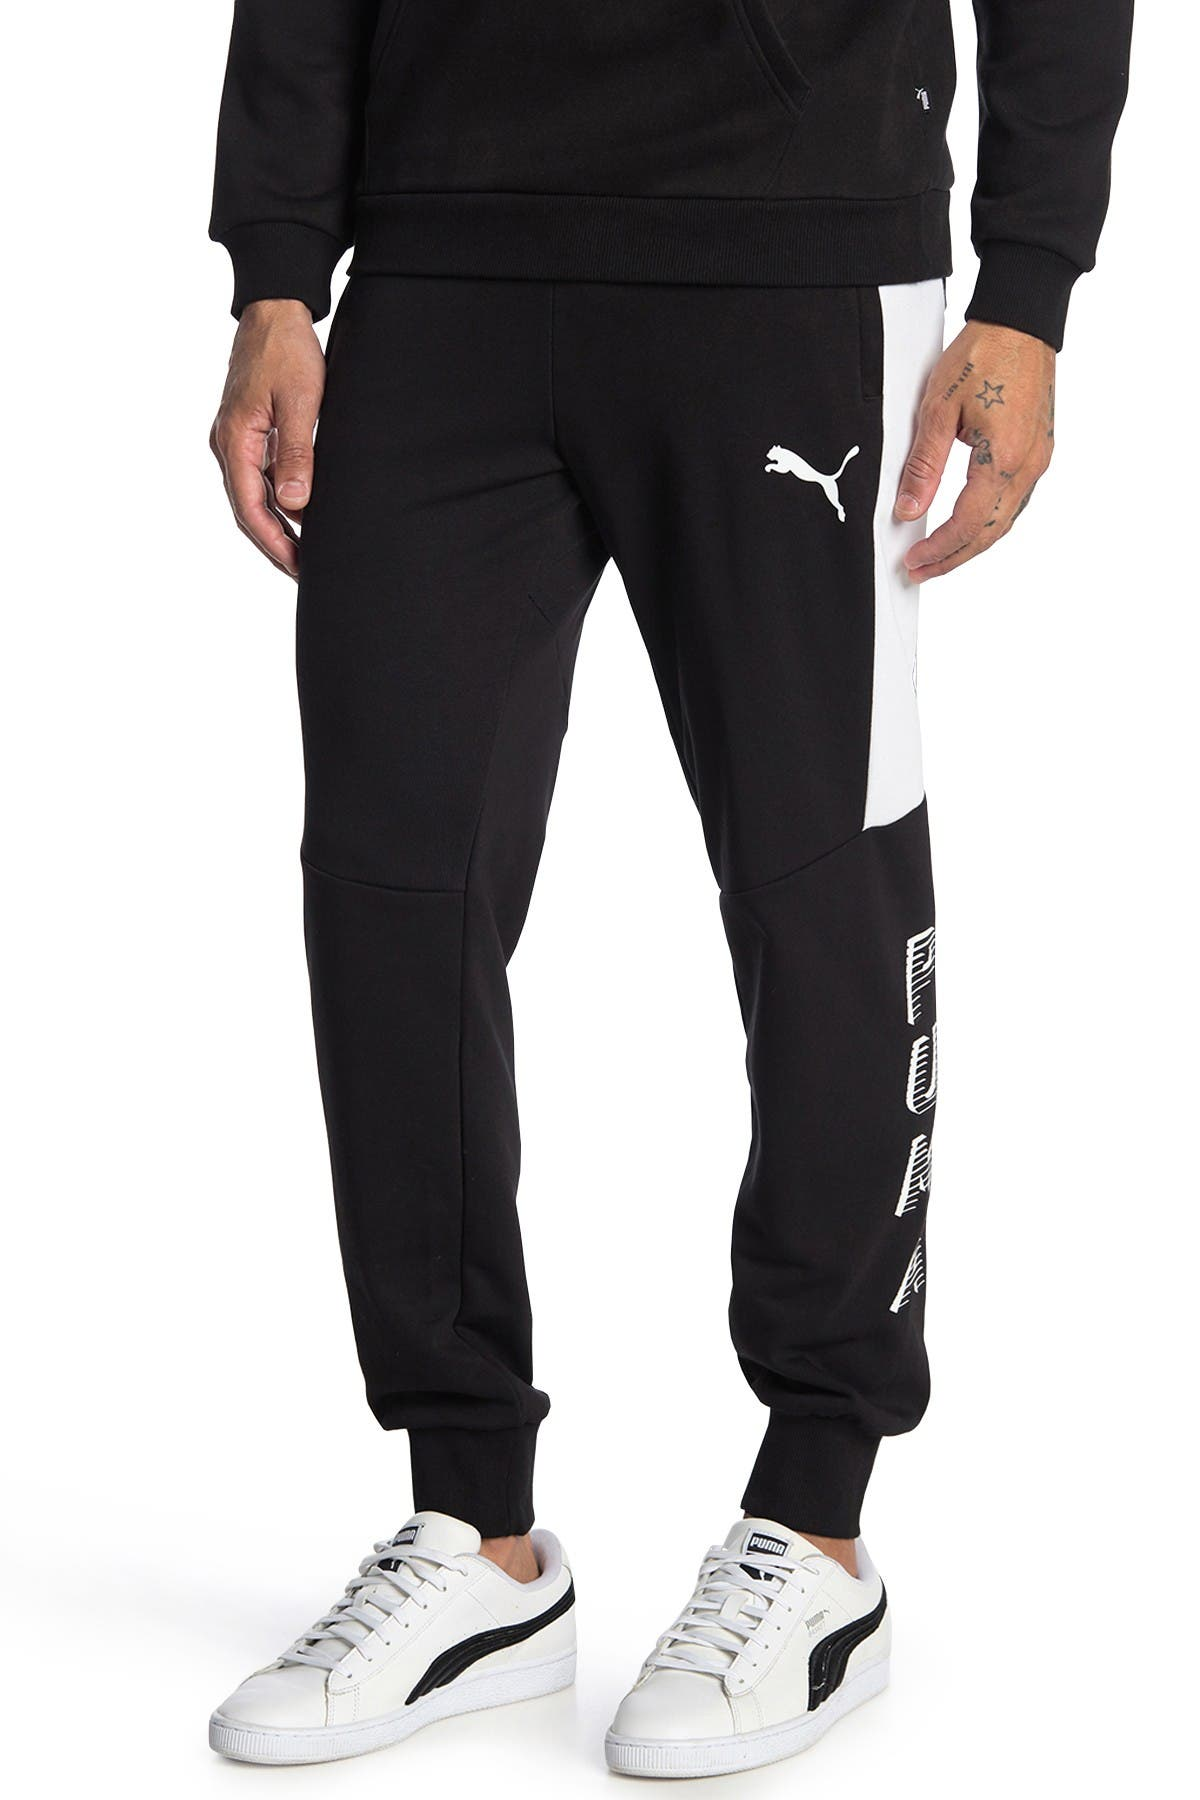 Image of PUMA Modern Sports Pants